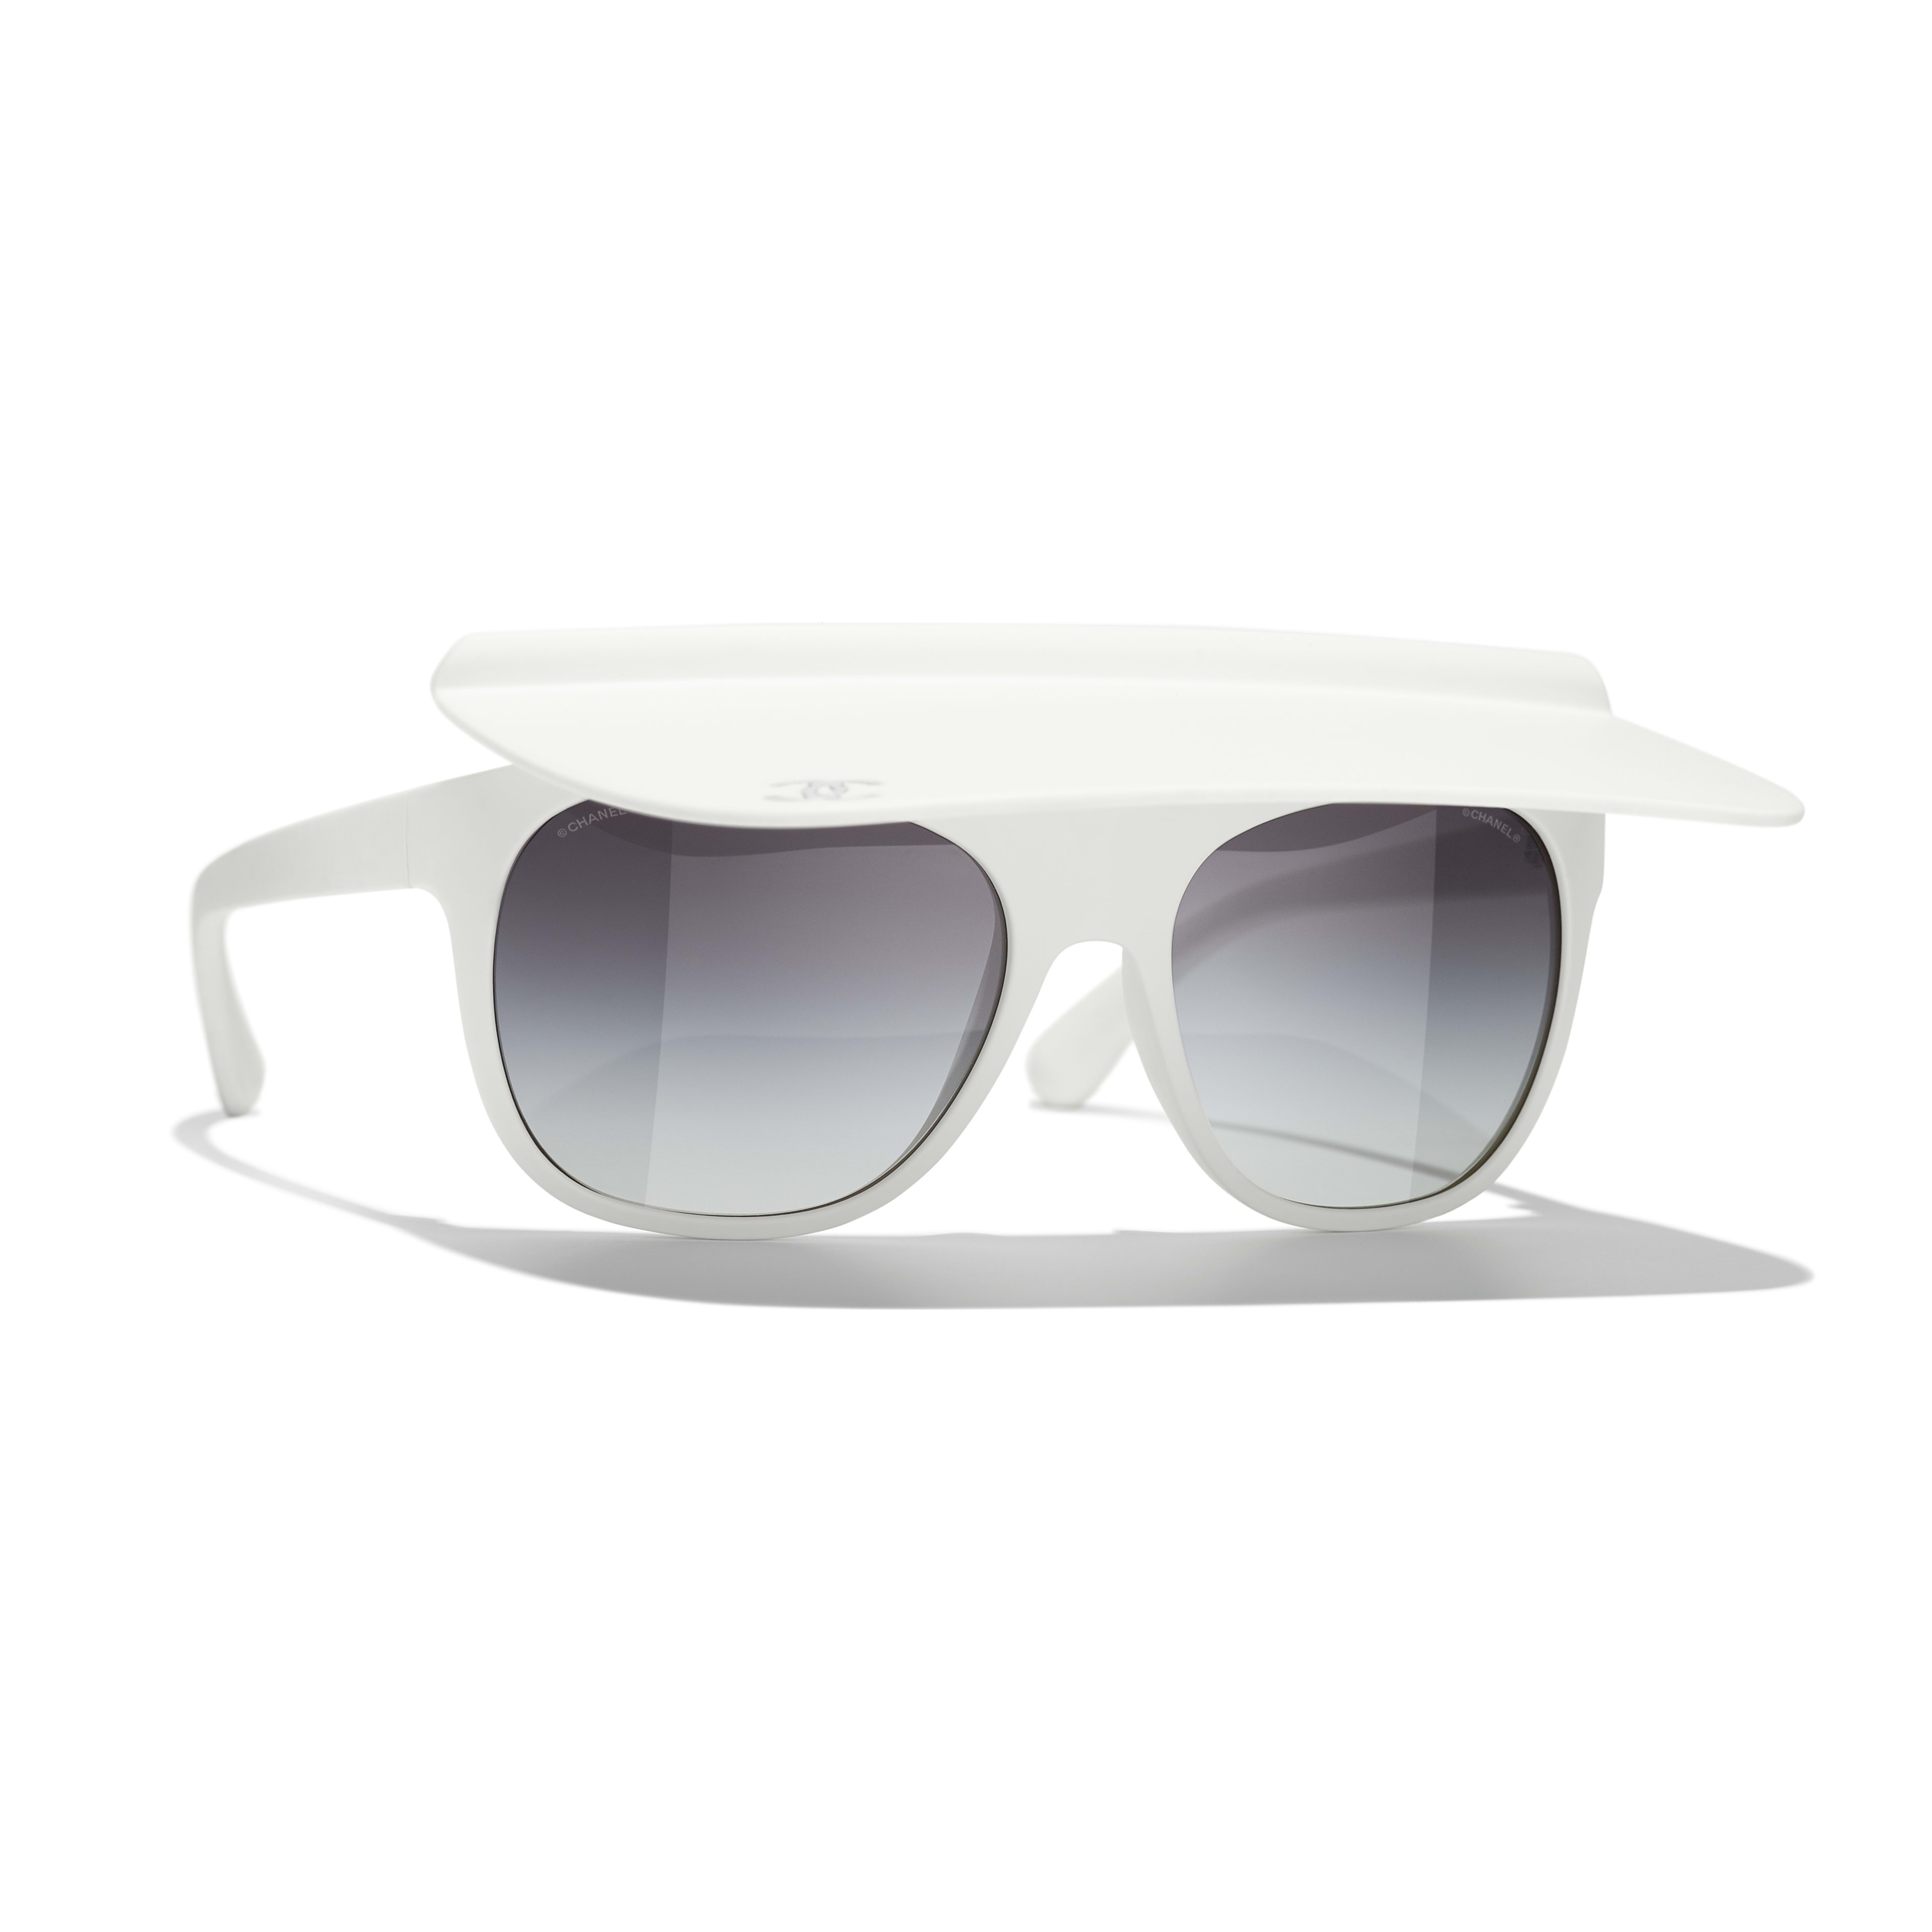 Visor Sunglasses - White - Nylon Fibre - CHANEL - Default view - see standard sized version